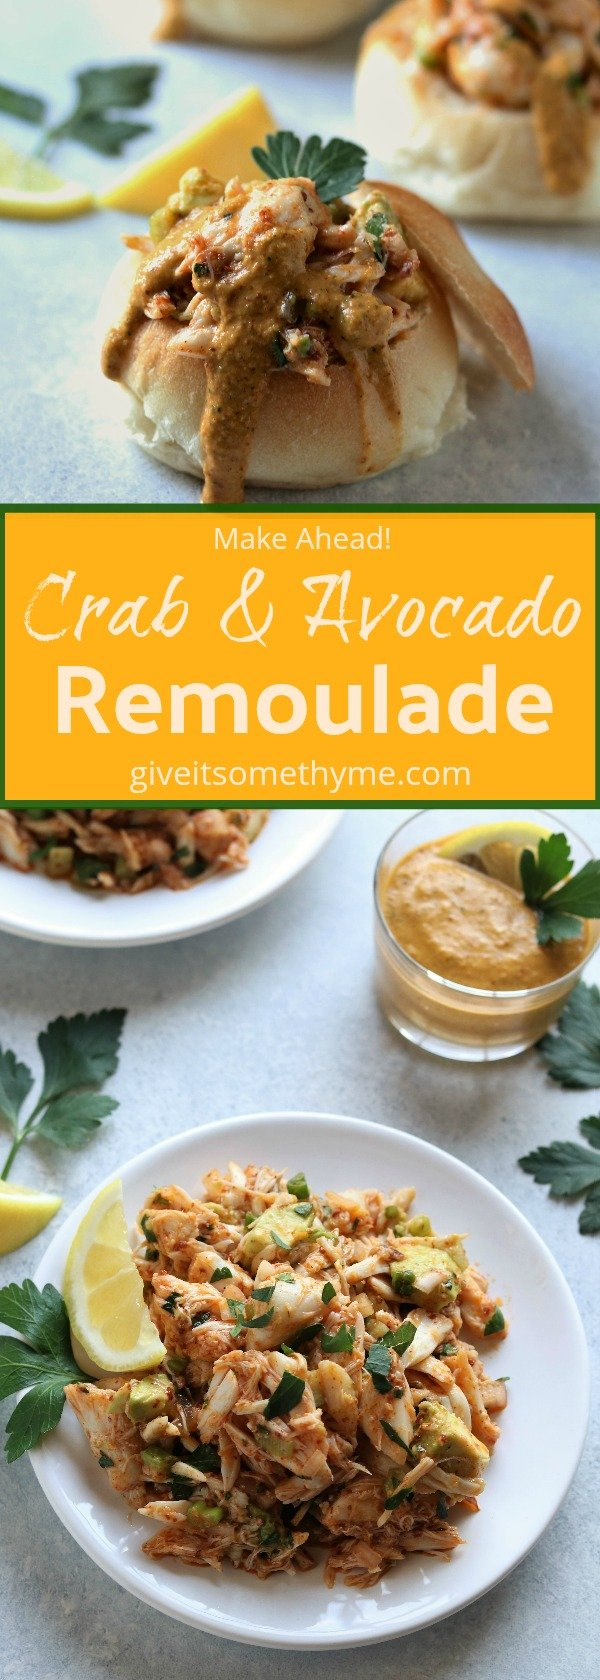 Crab & Avocado Remoulade   Give it Some Thyme